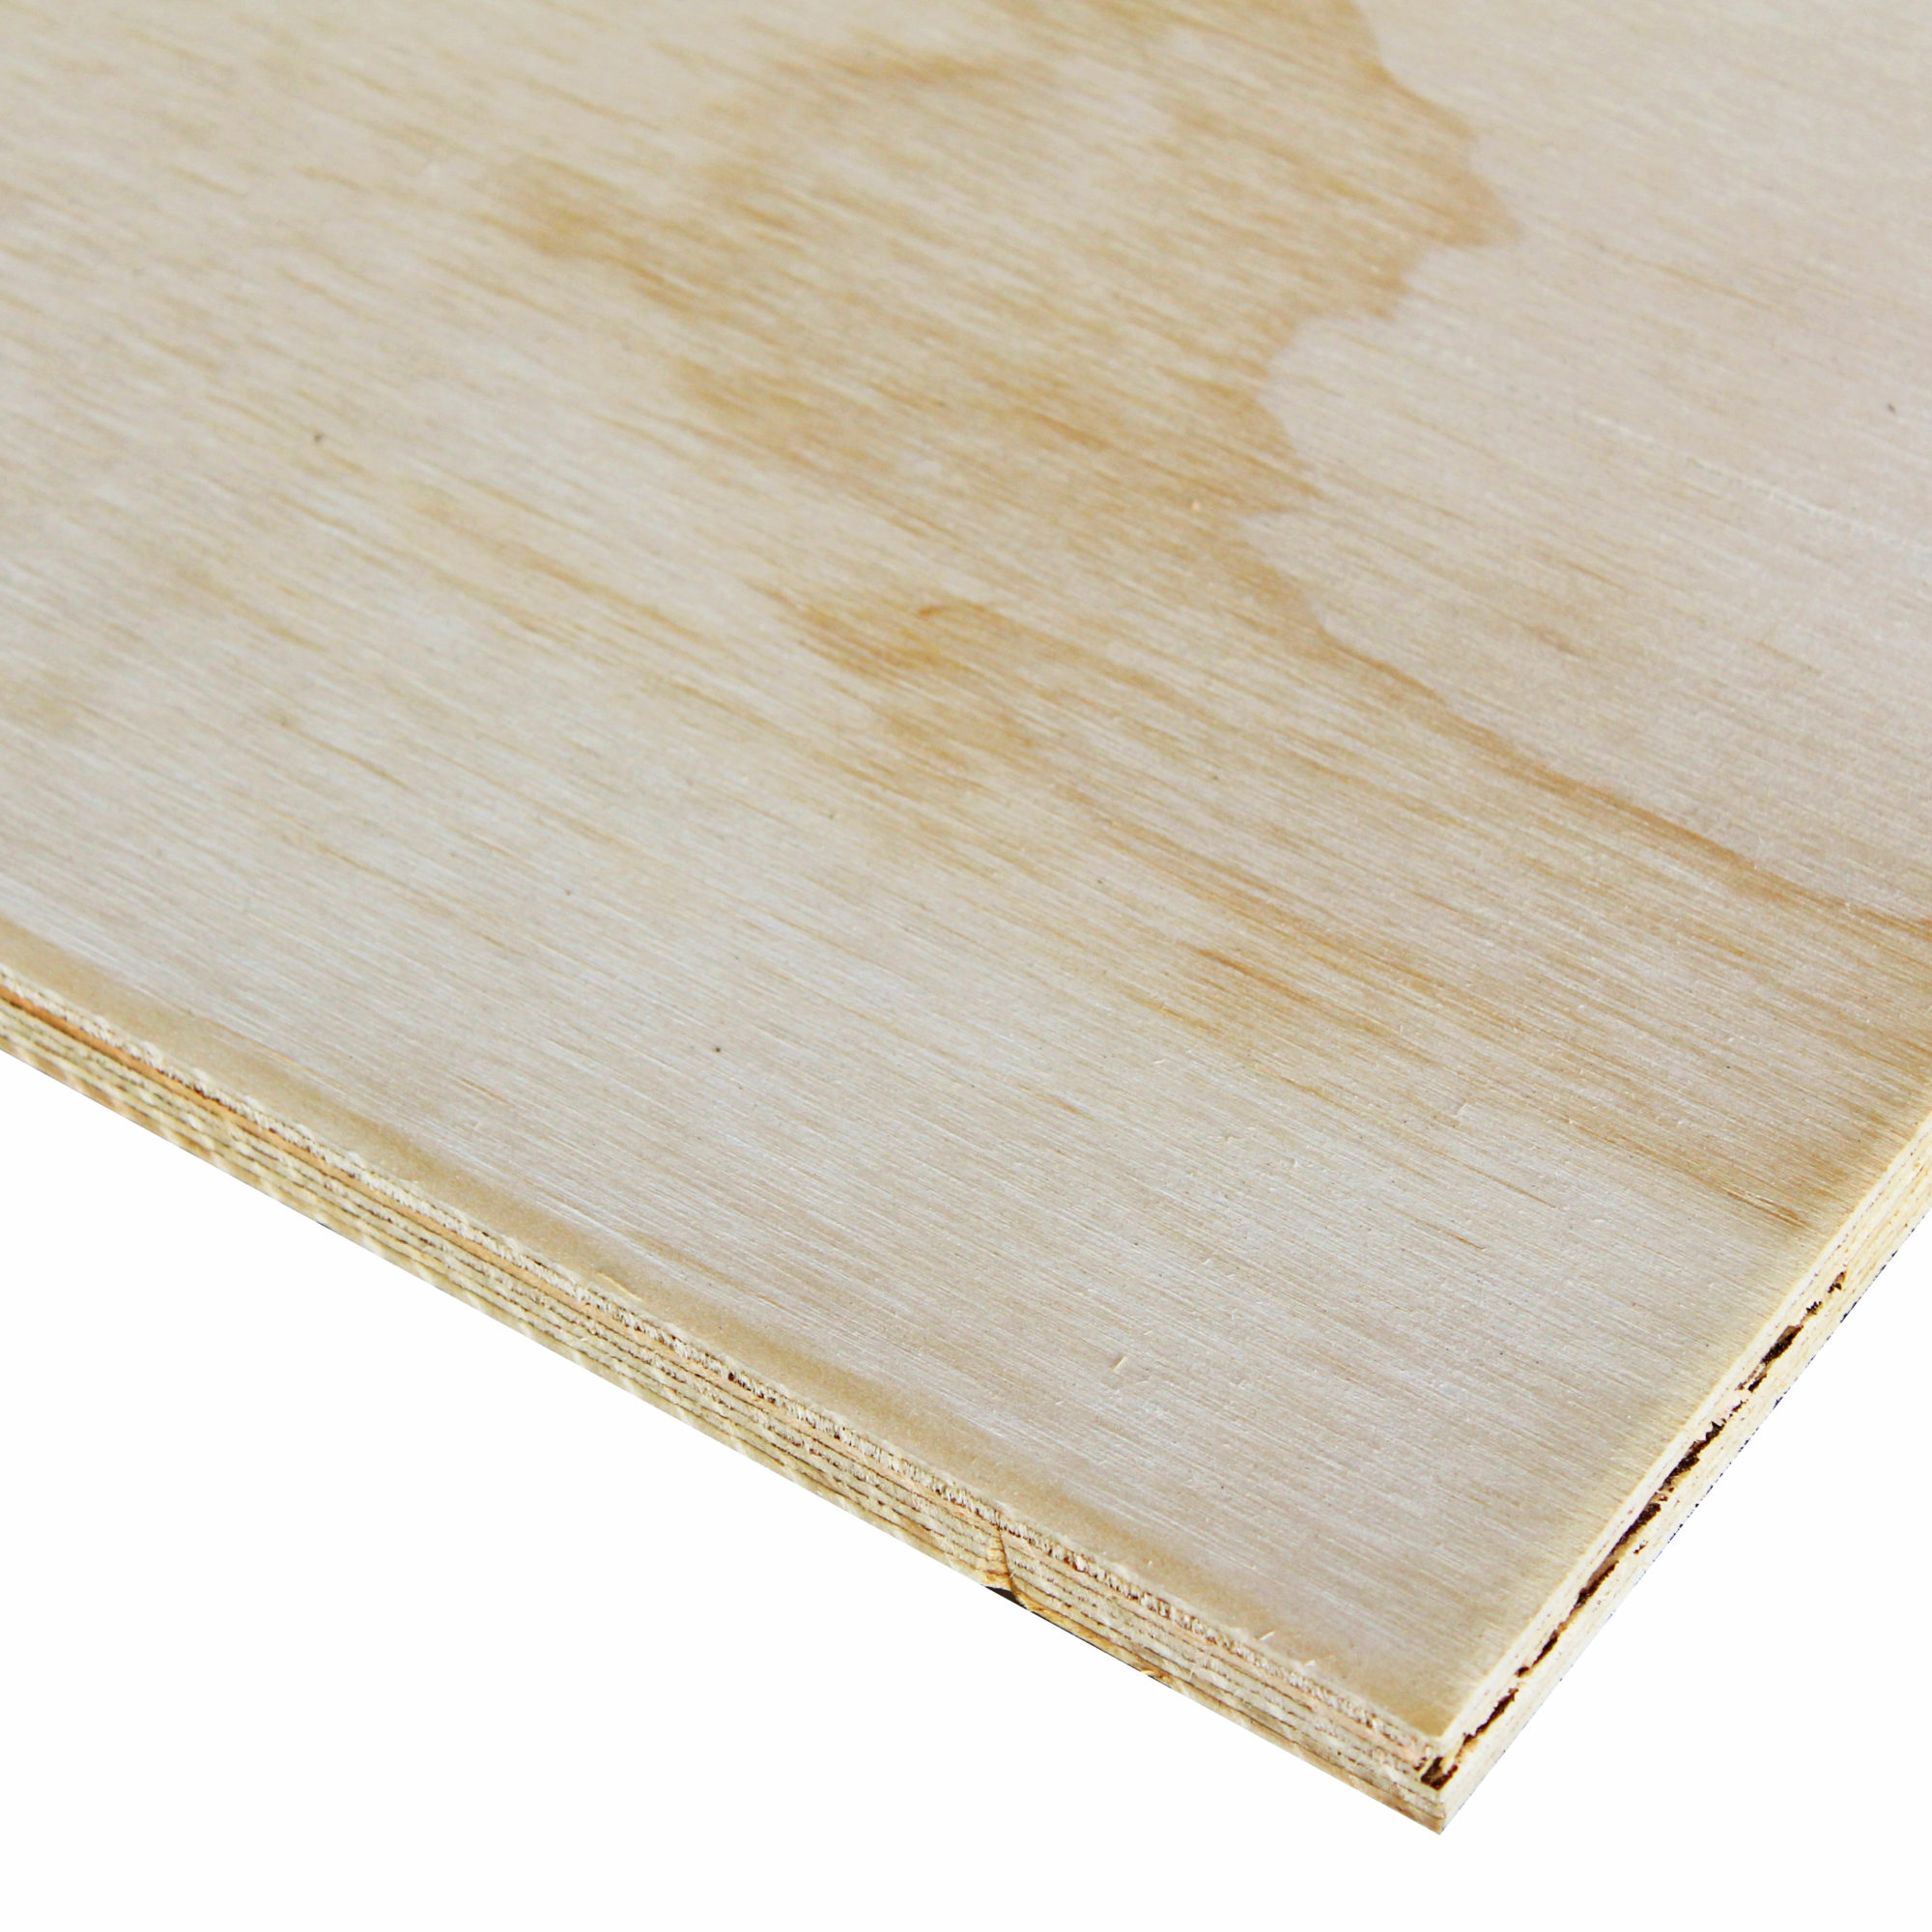 AC SANDED PINE UNDERLAYMENT PLYWOOD